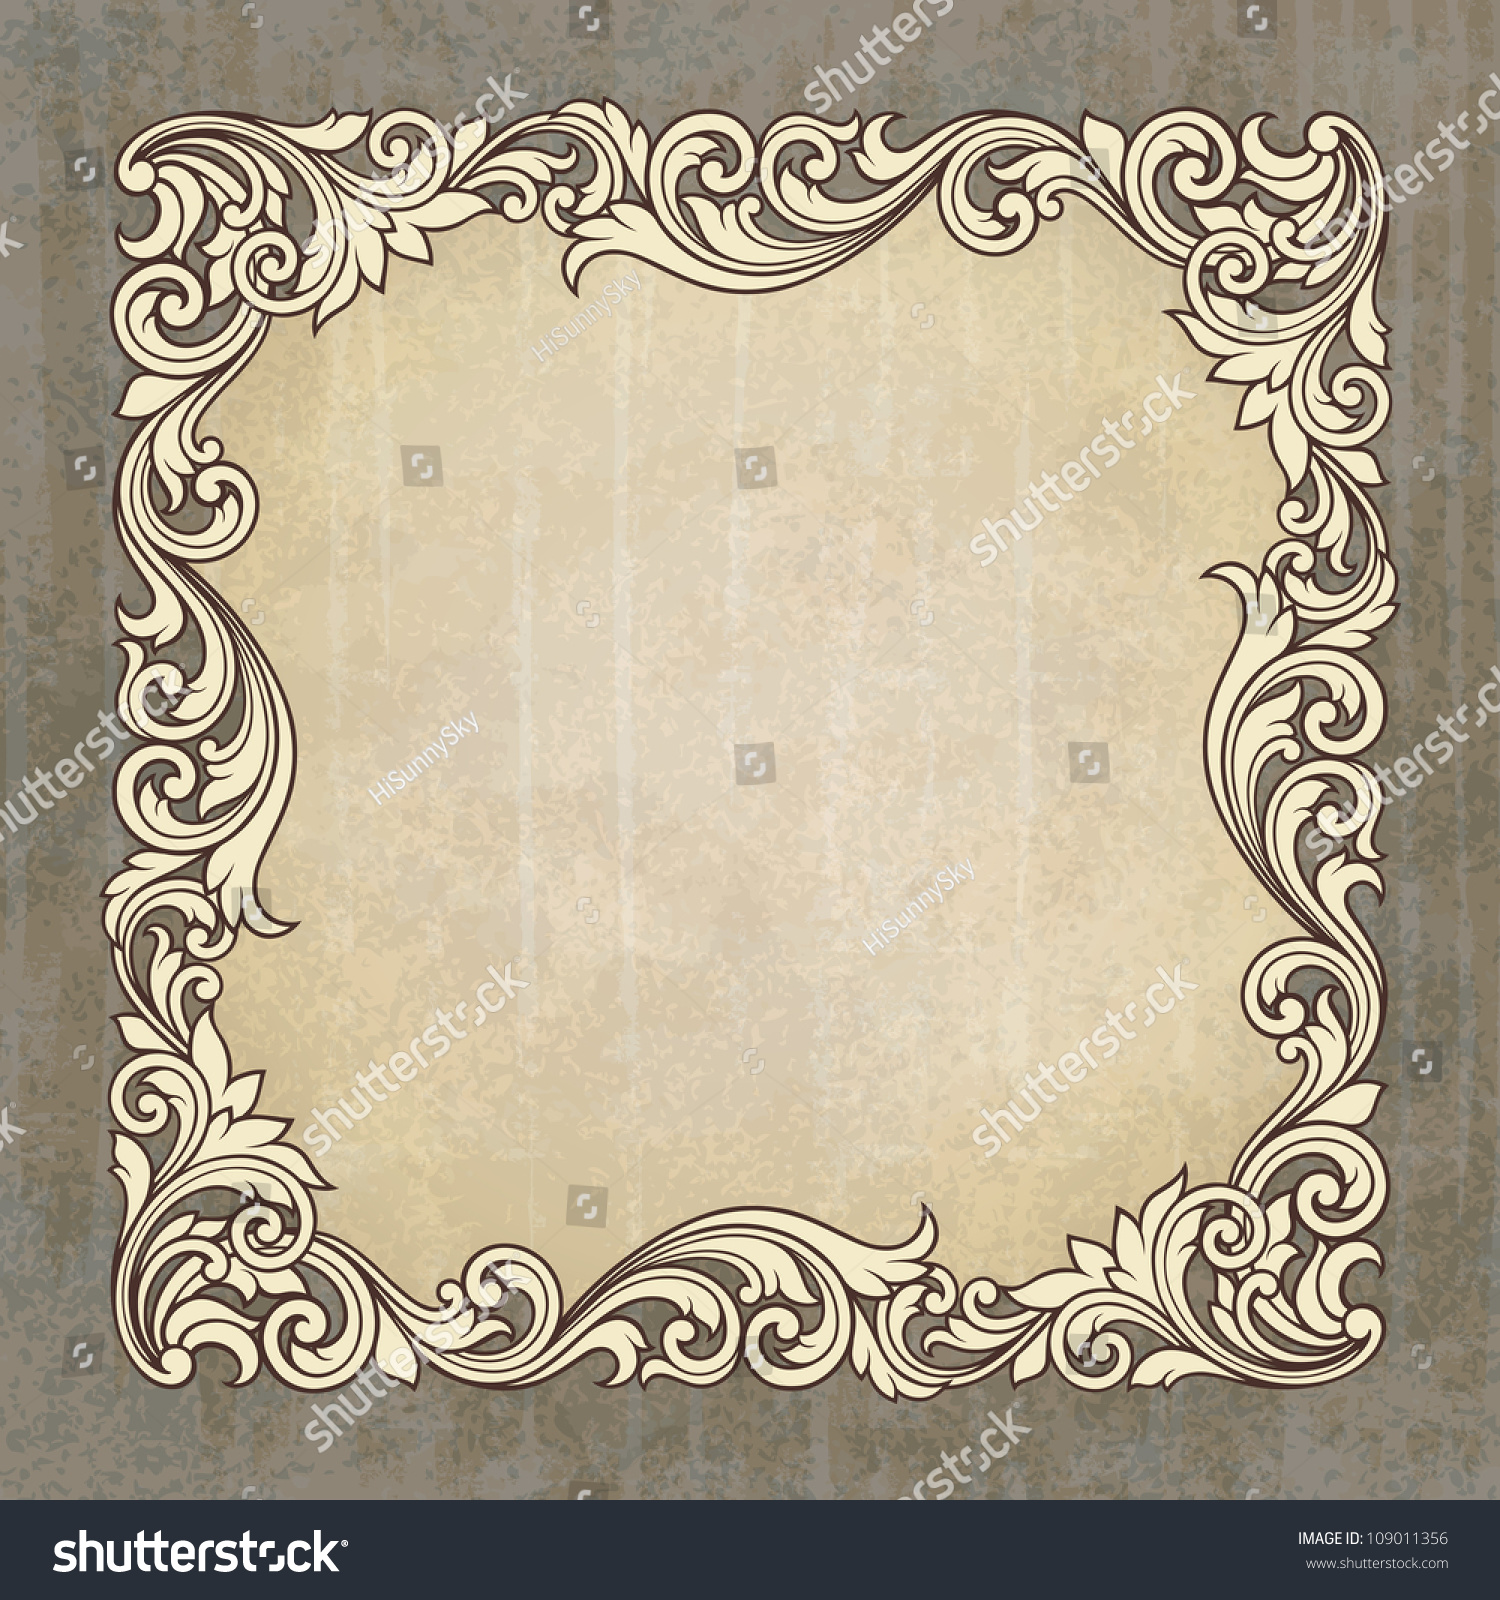 vector vintage border frame engraving at grunge background with retro ornament pattern in antique baroque style